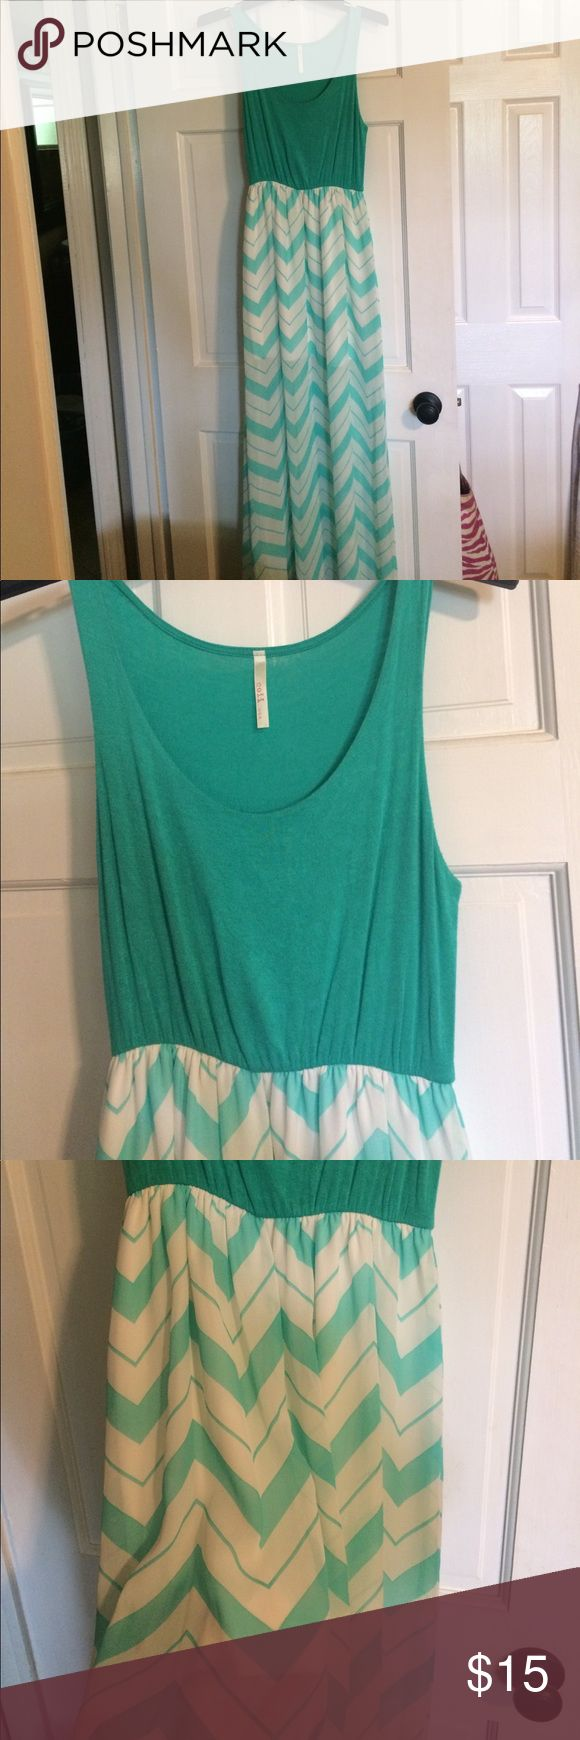 Turquoise Chevron Maxi Turquoise and white Chevron maxi dress. Top is soft cotton material and bottom is semi sheer and flows. Dress has slip that hits mid thigh. Super cute on. Size med. Dresses Maxi